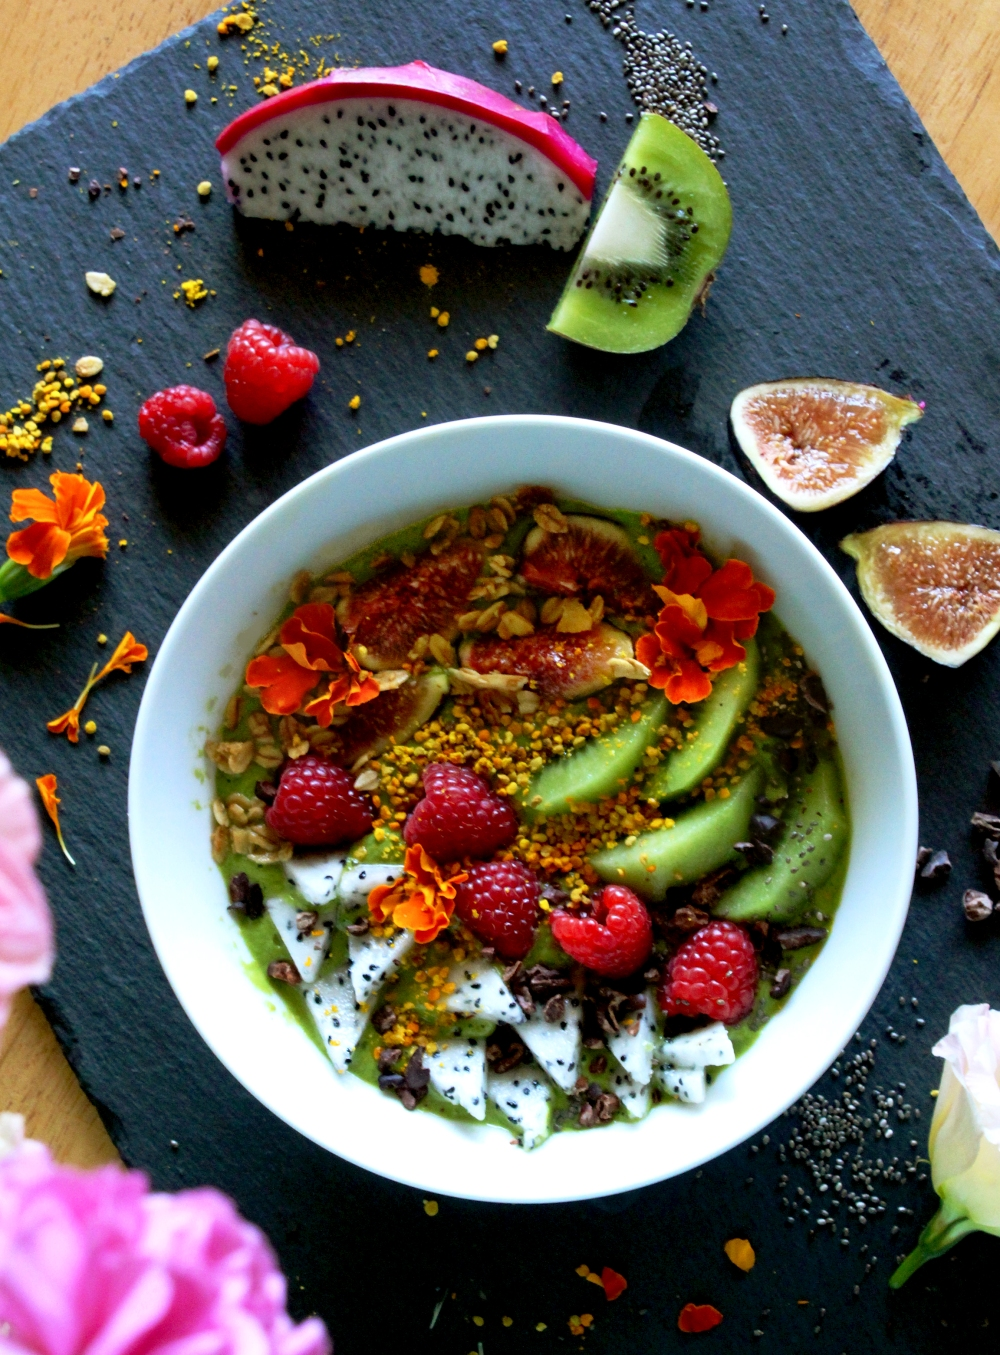 smoothie bowl 129 edit